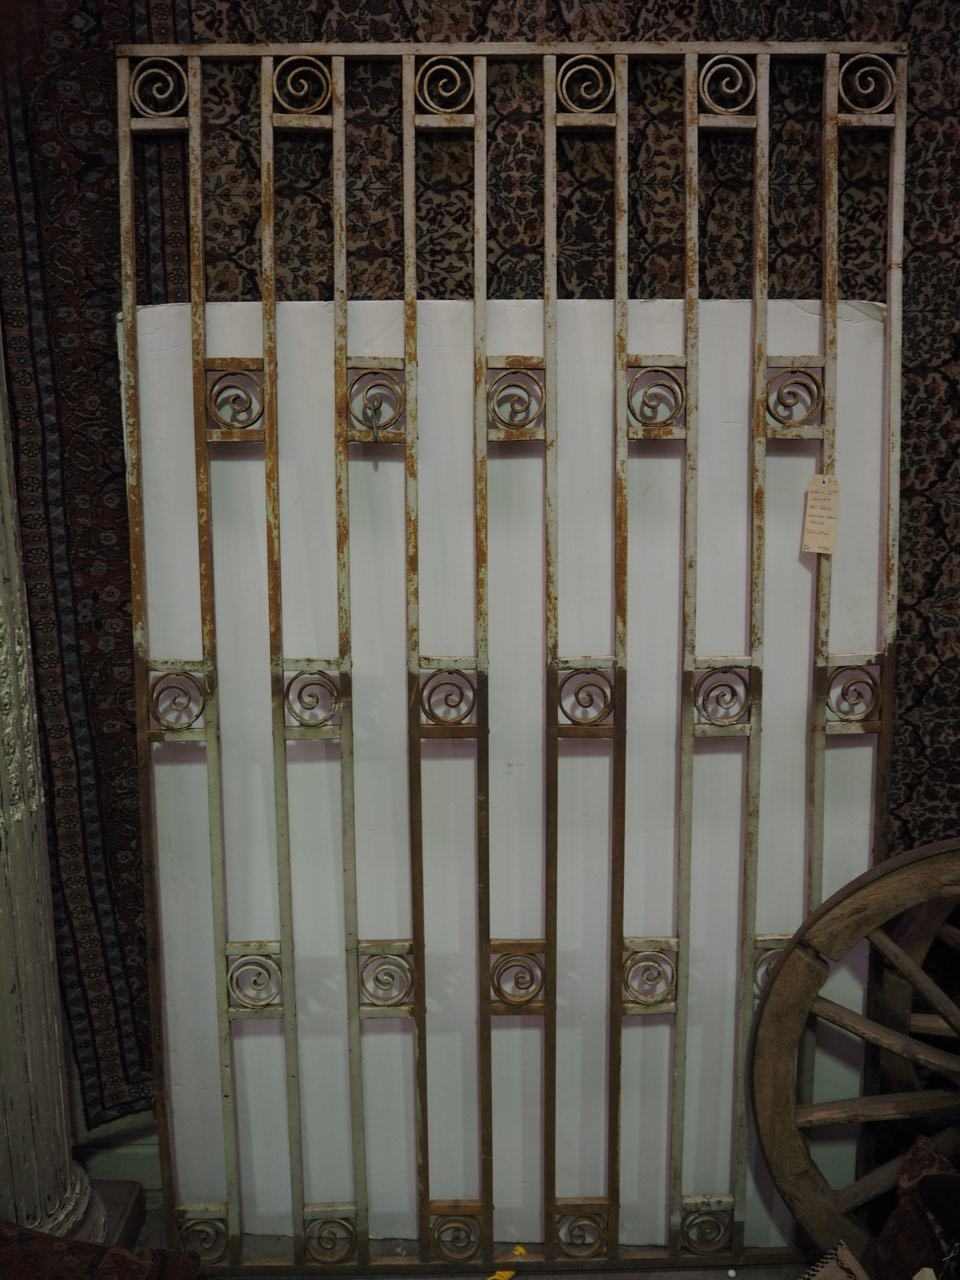 Antique Early 20th Century Art Deco Wrought Iron Grille